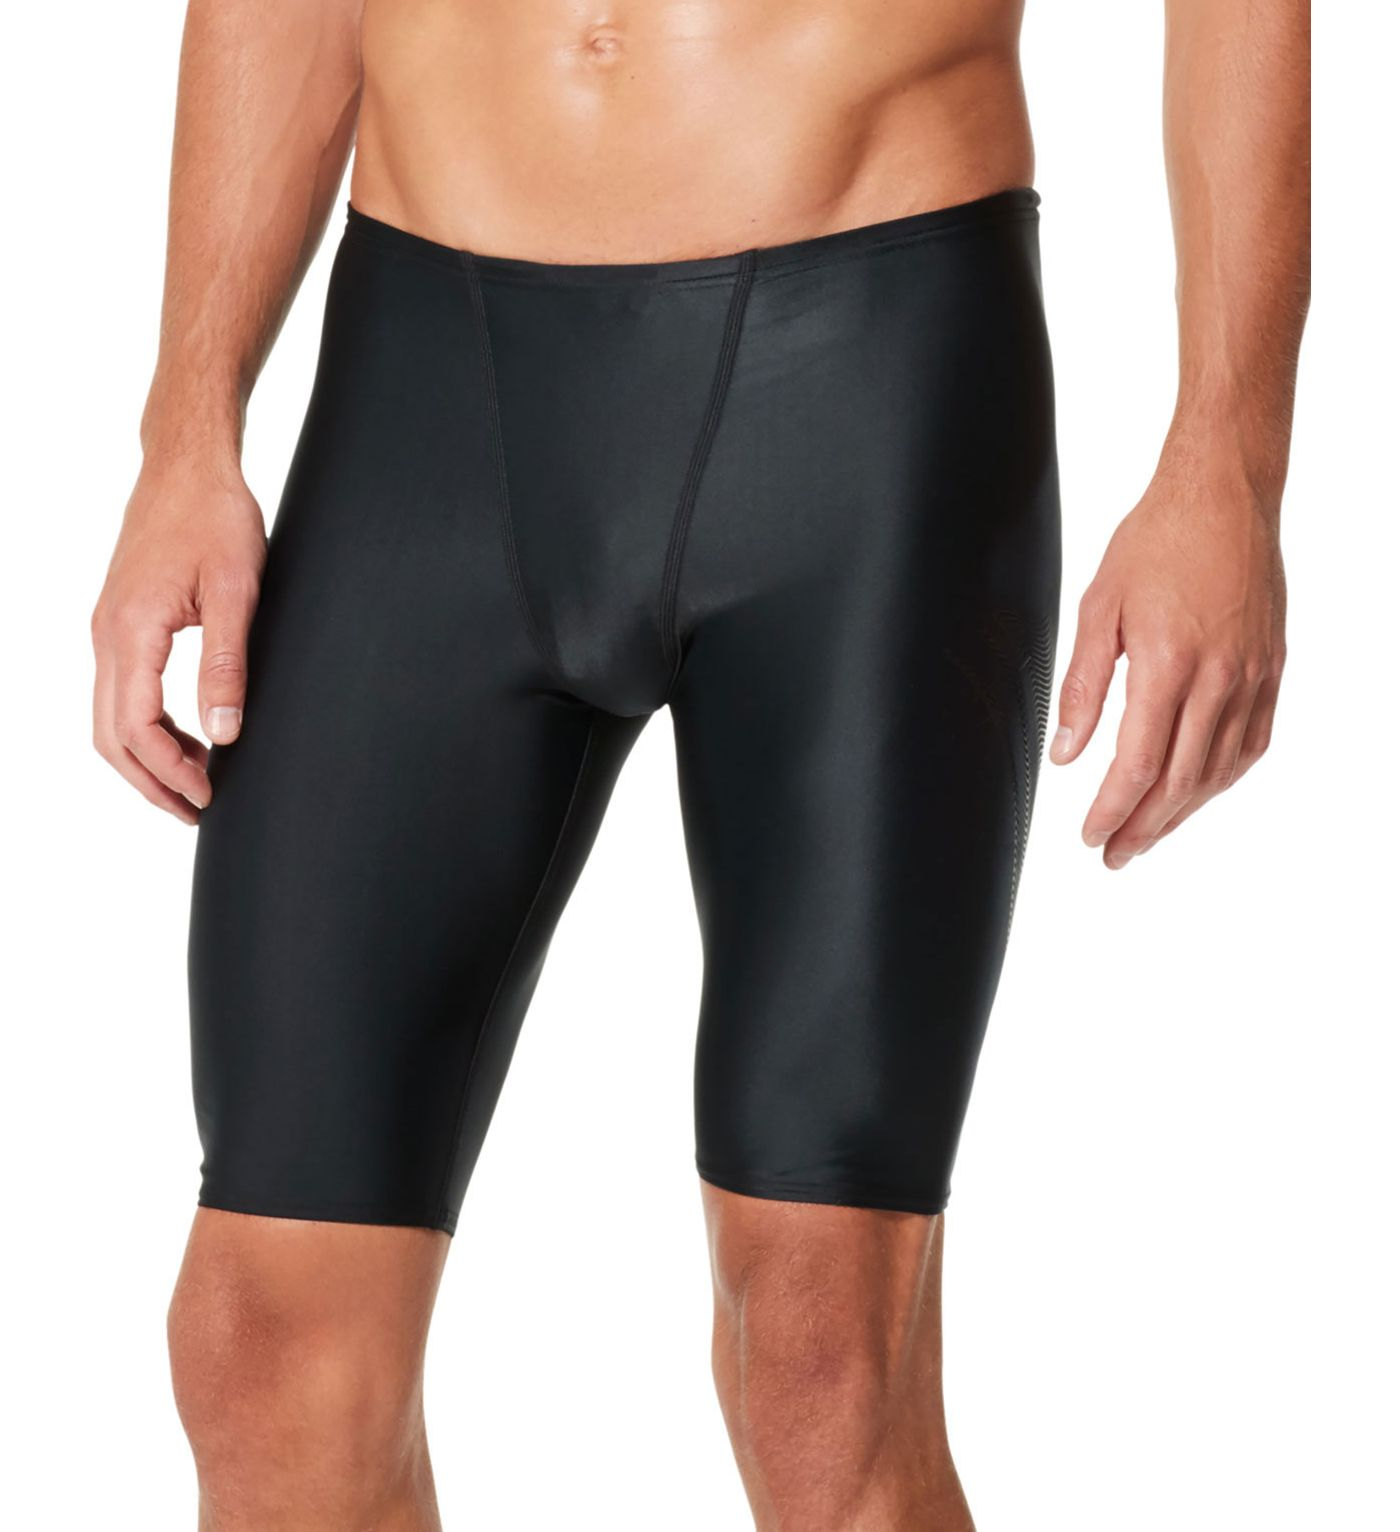 Speedo Men's Rapid Scale Jammer